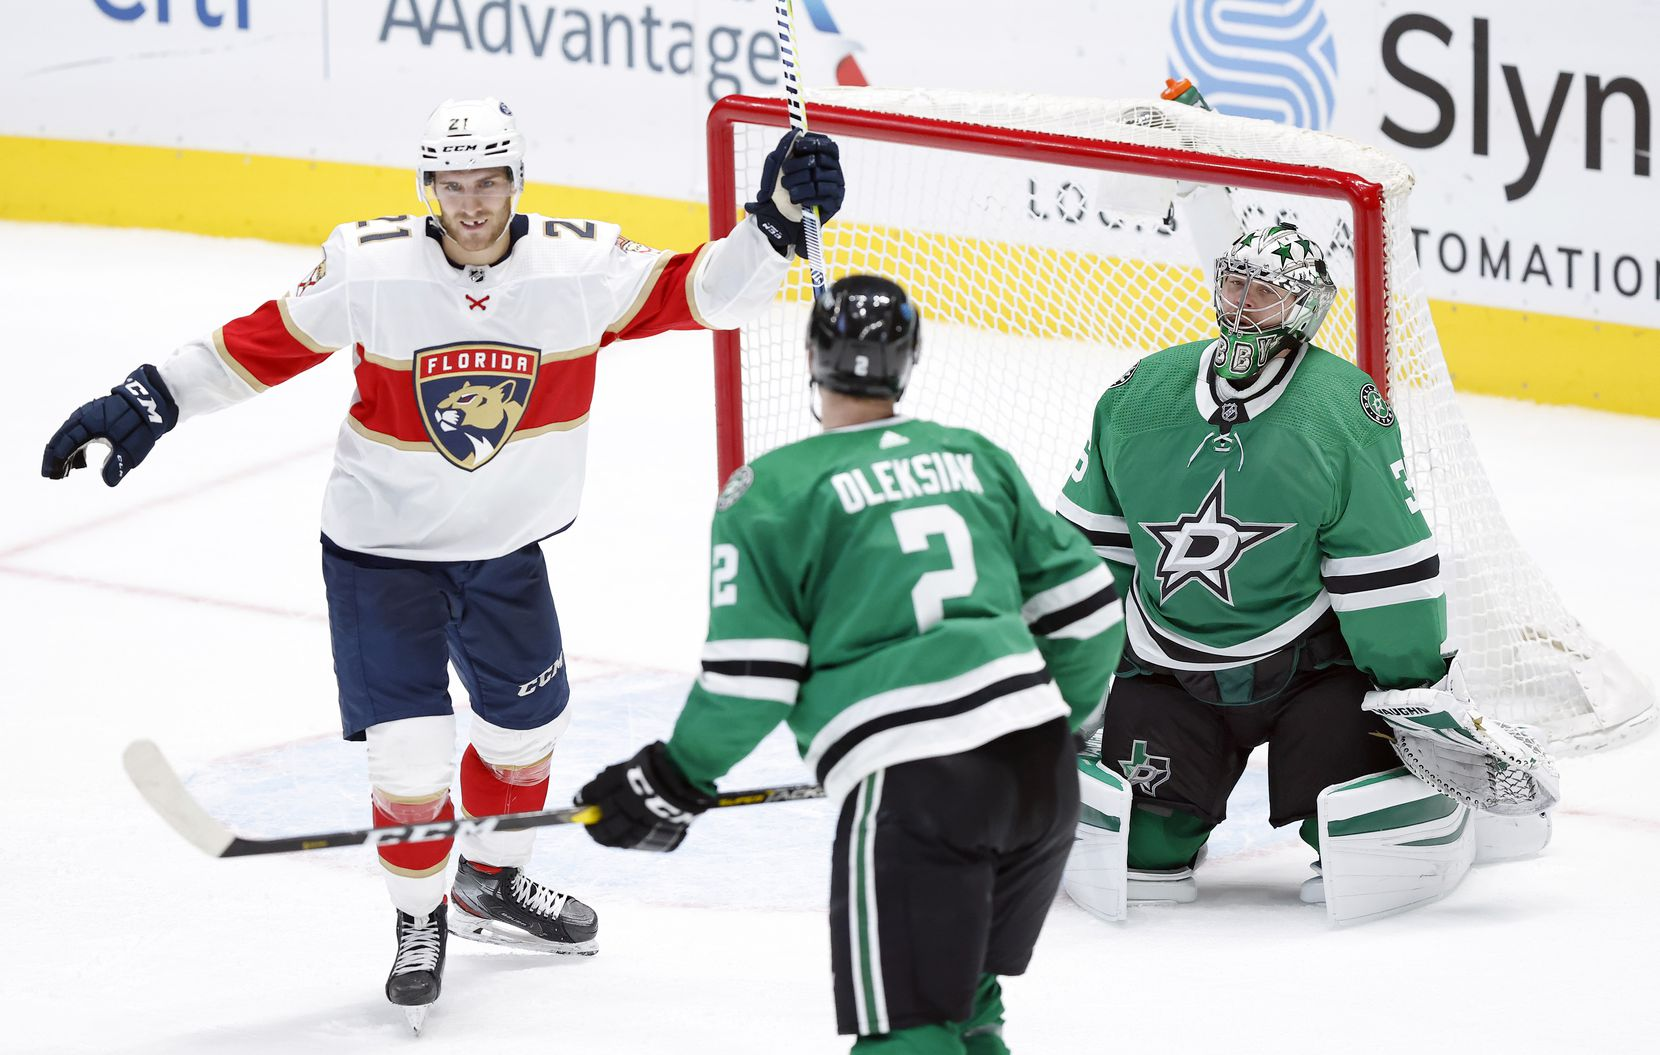 Florida Panthers center Alex Wennberg (21) celebrates center Frank Vatrano's overtime goal on Dallas Stars goaltender Anton Khudobin (35) at the American Airlines Center in Dallas, Tuesday, April 13, 2021. The Stars lost, 3-2. (Tom Fox/The Dallas Morning News)